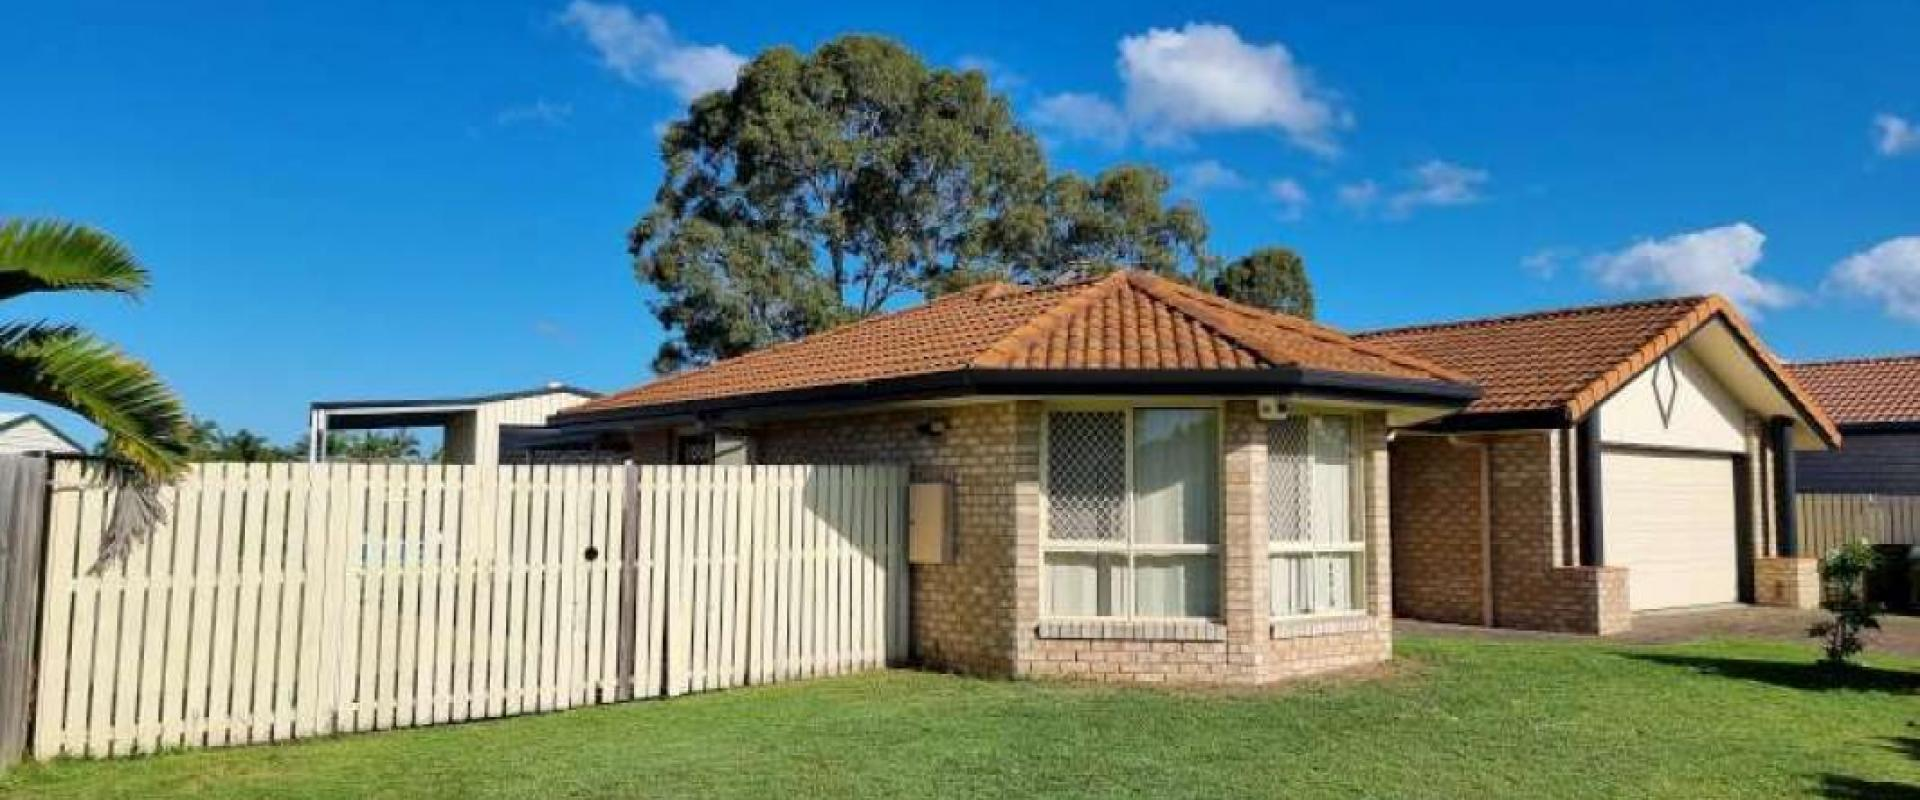 NO REAR NEIGHBOURS, LARGE CARAVAN SHED, VEHICLE PORT, SOLAR SYSTEM, GOOD SIZE LIV, DINING,  SEPARATE FAMILY RM, CLOSE TO SHOPPING CENTRE & GOLF COURSE